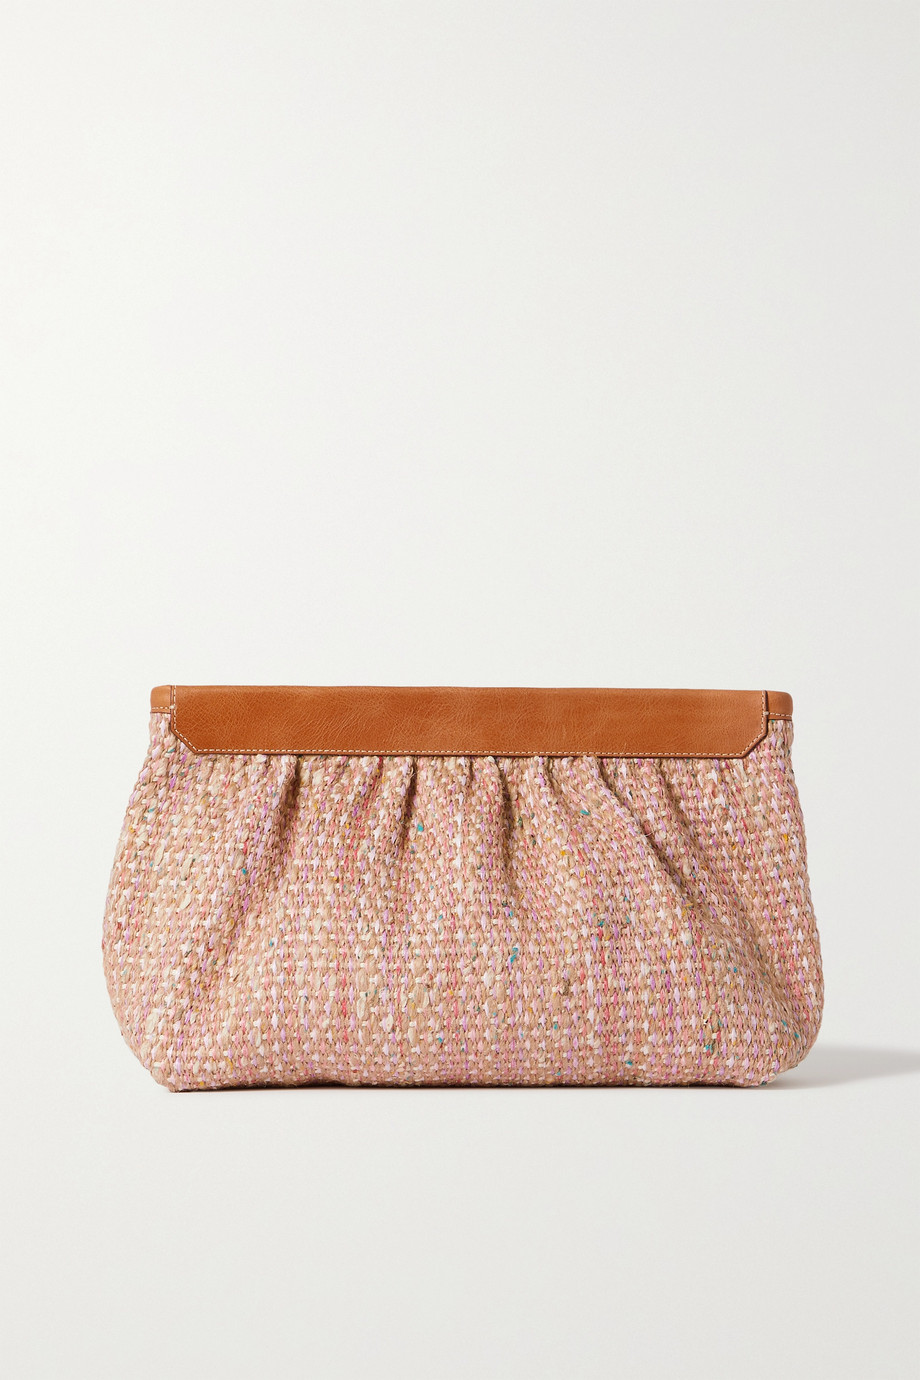 ISABEL MARANT Luz leather-trimmed tweed clutch